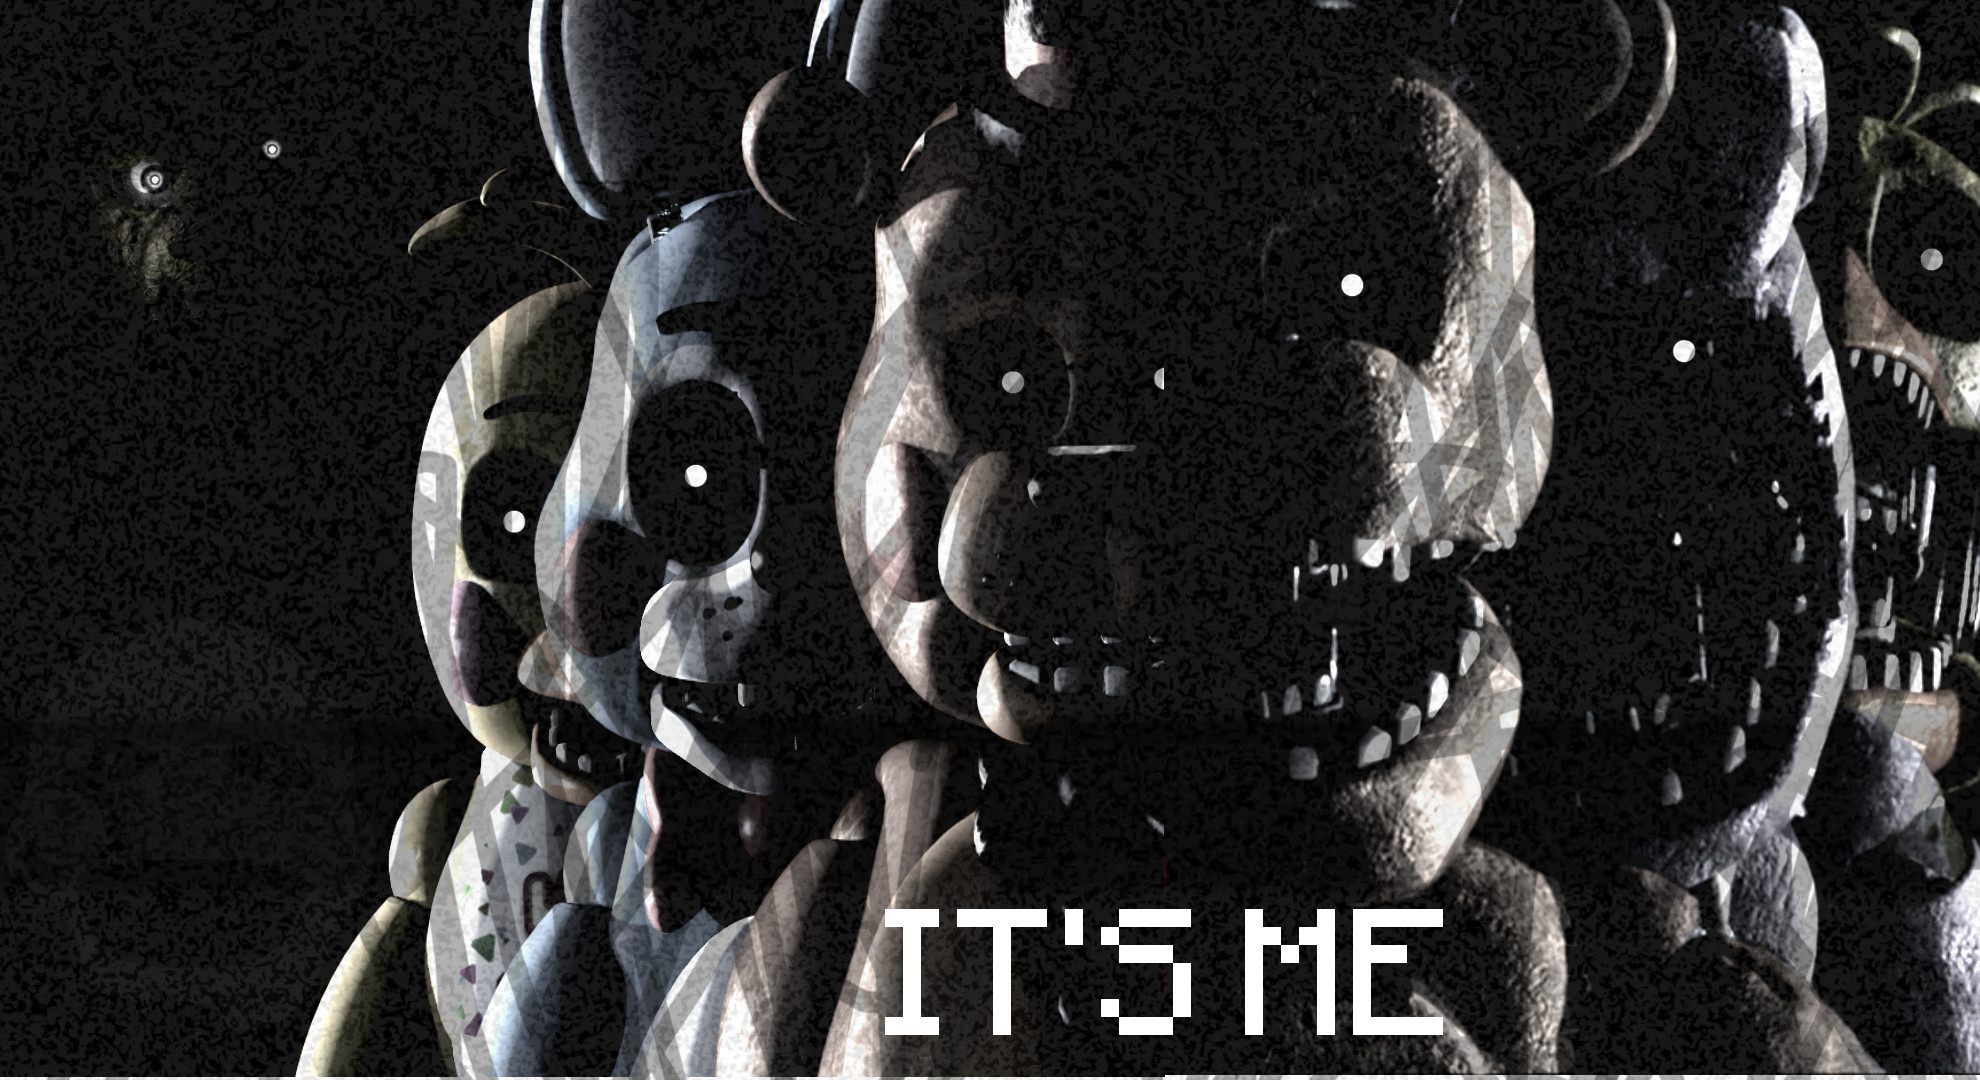 1980x1080 My Own FNAF Wallpaper. (You can download it if you'd like) ...